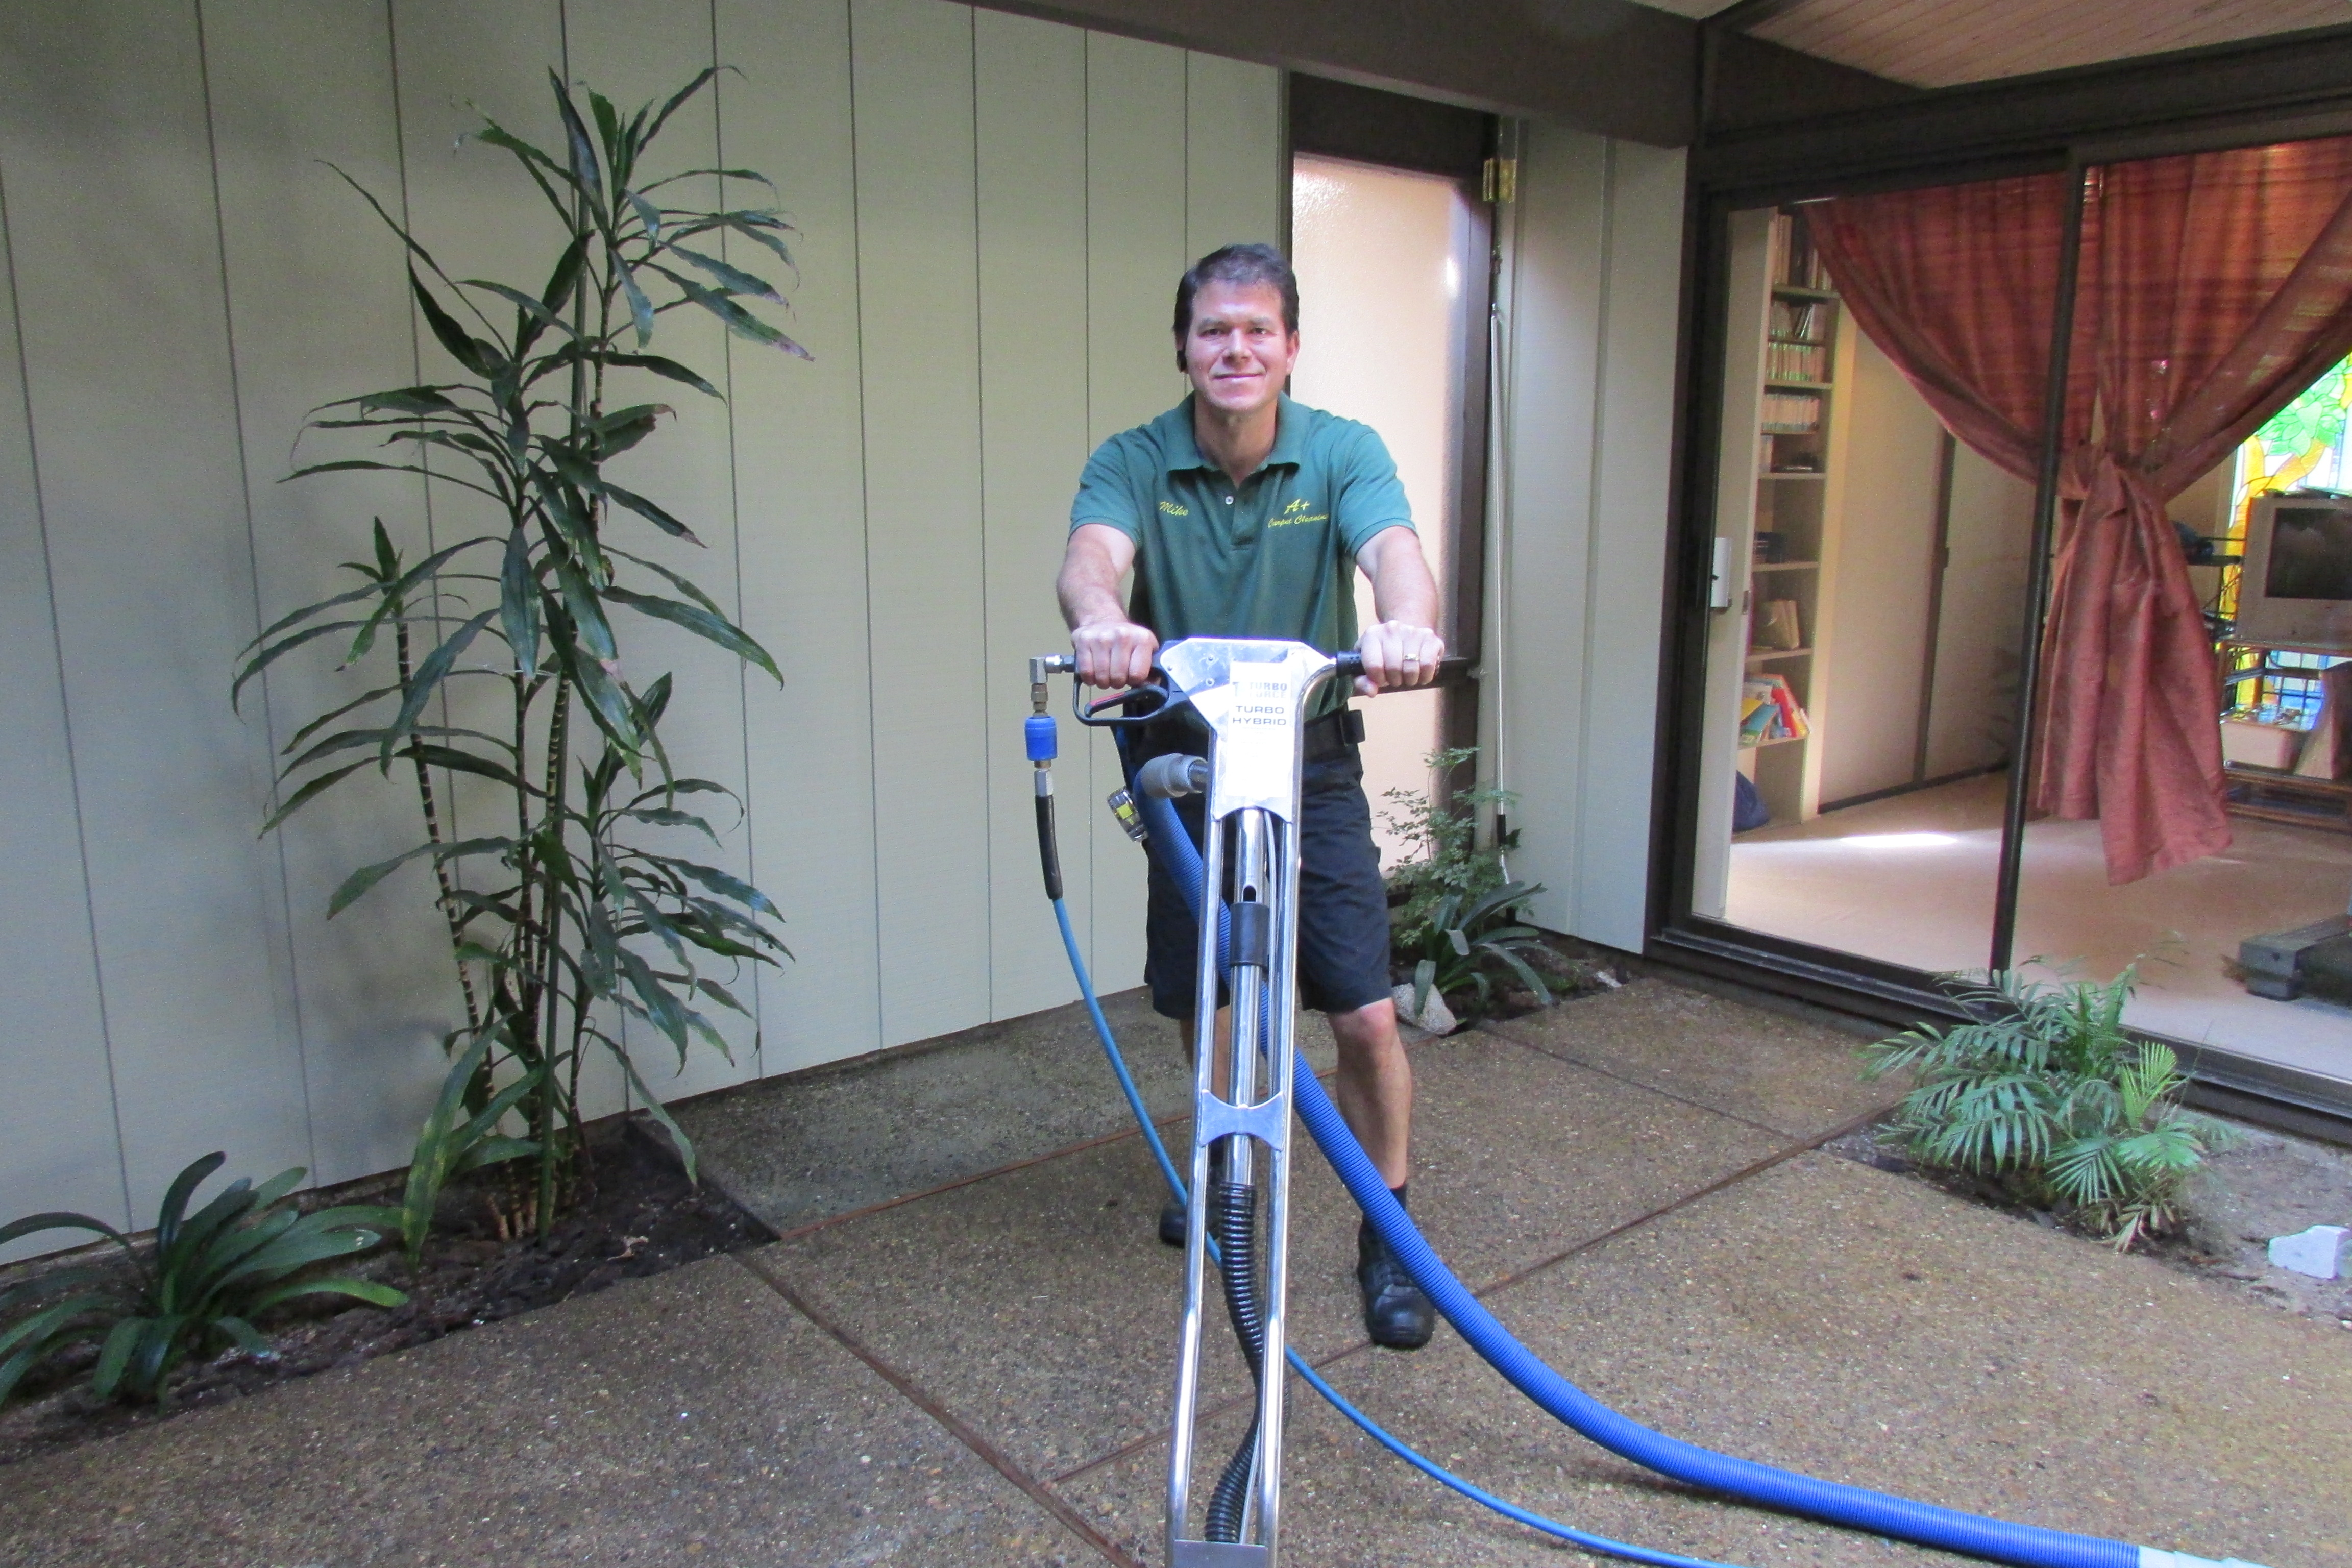 A+ Carpet Cleaning West Linn image 1